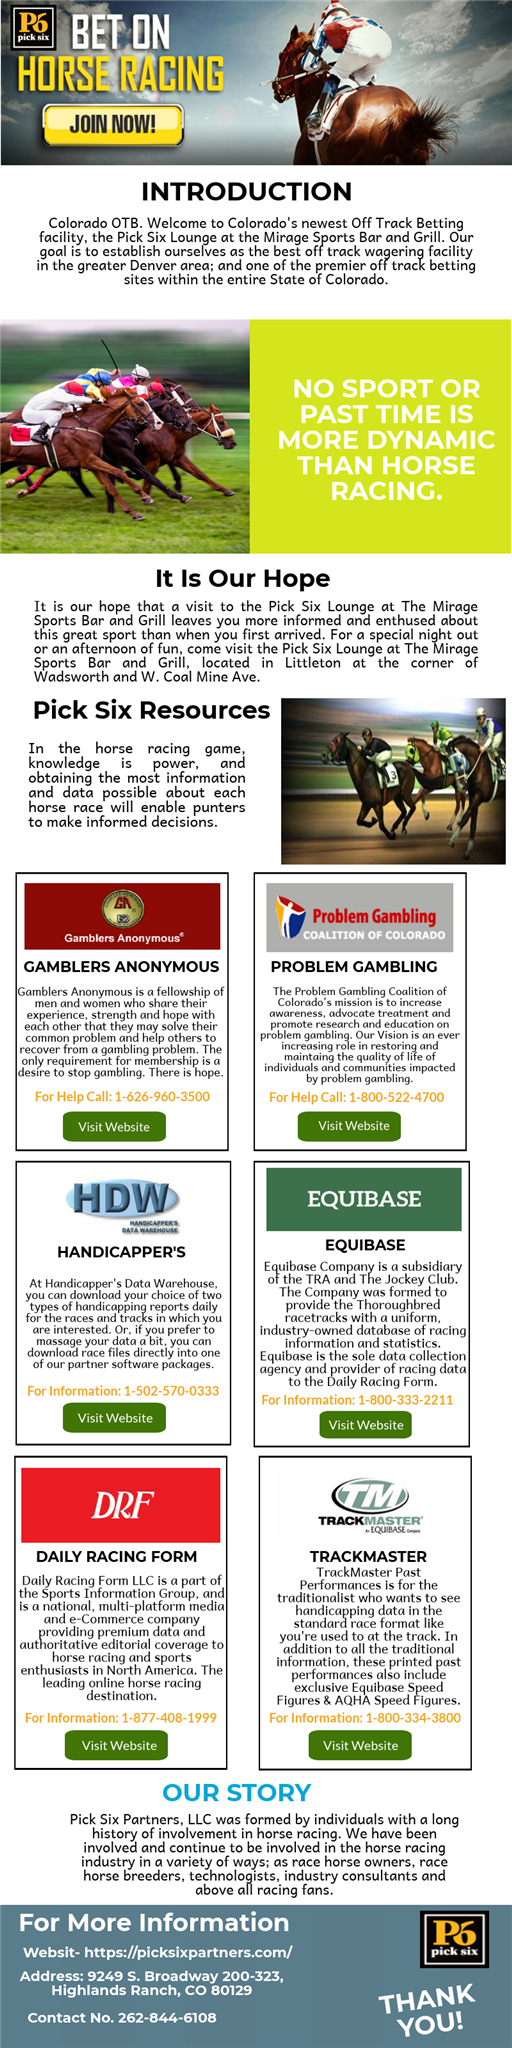 Horse Racing - picksix partner - Medium